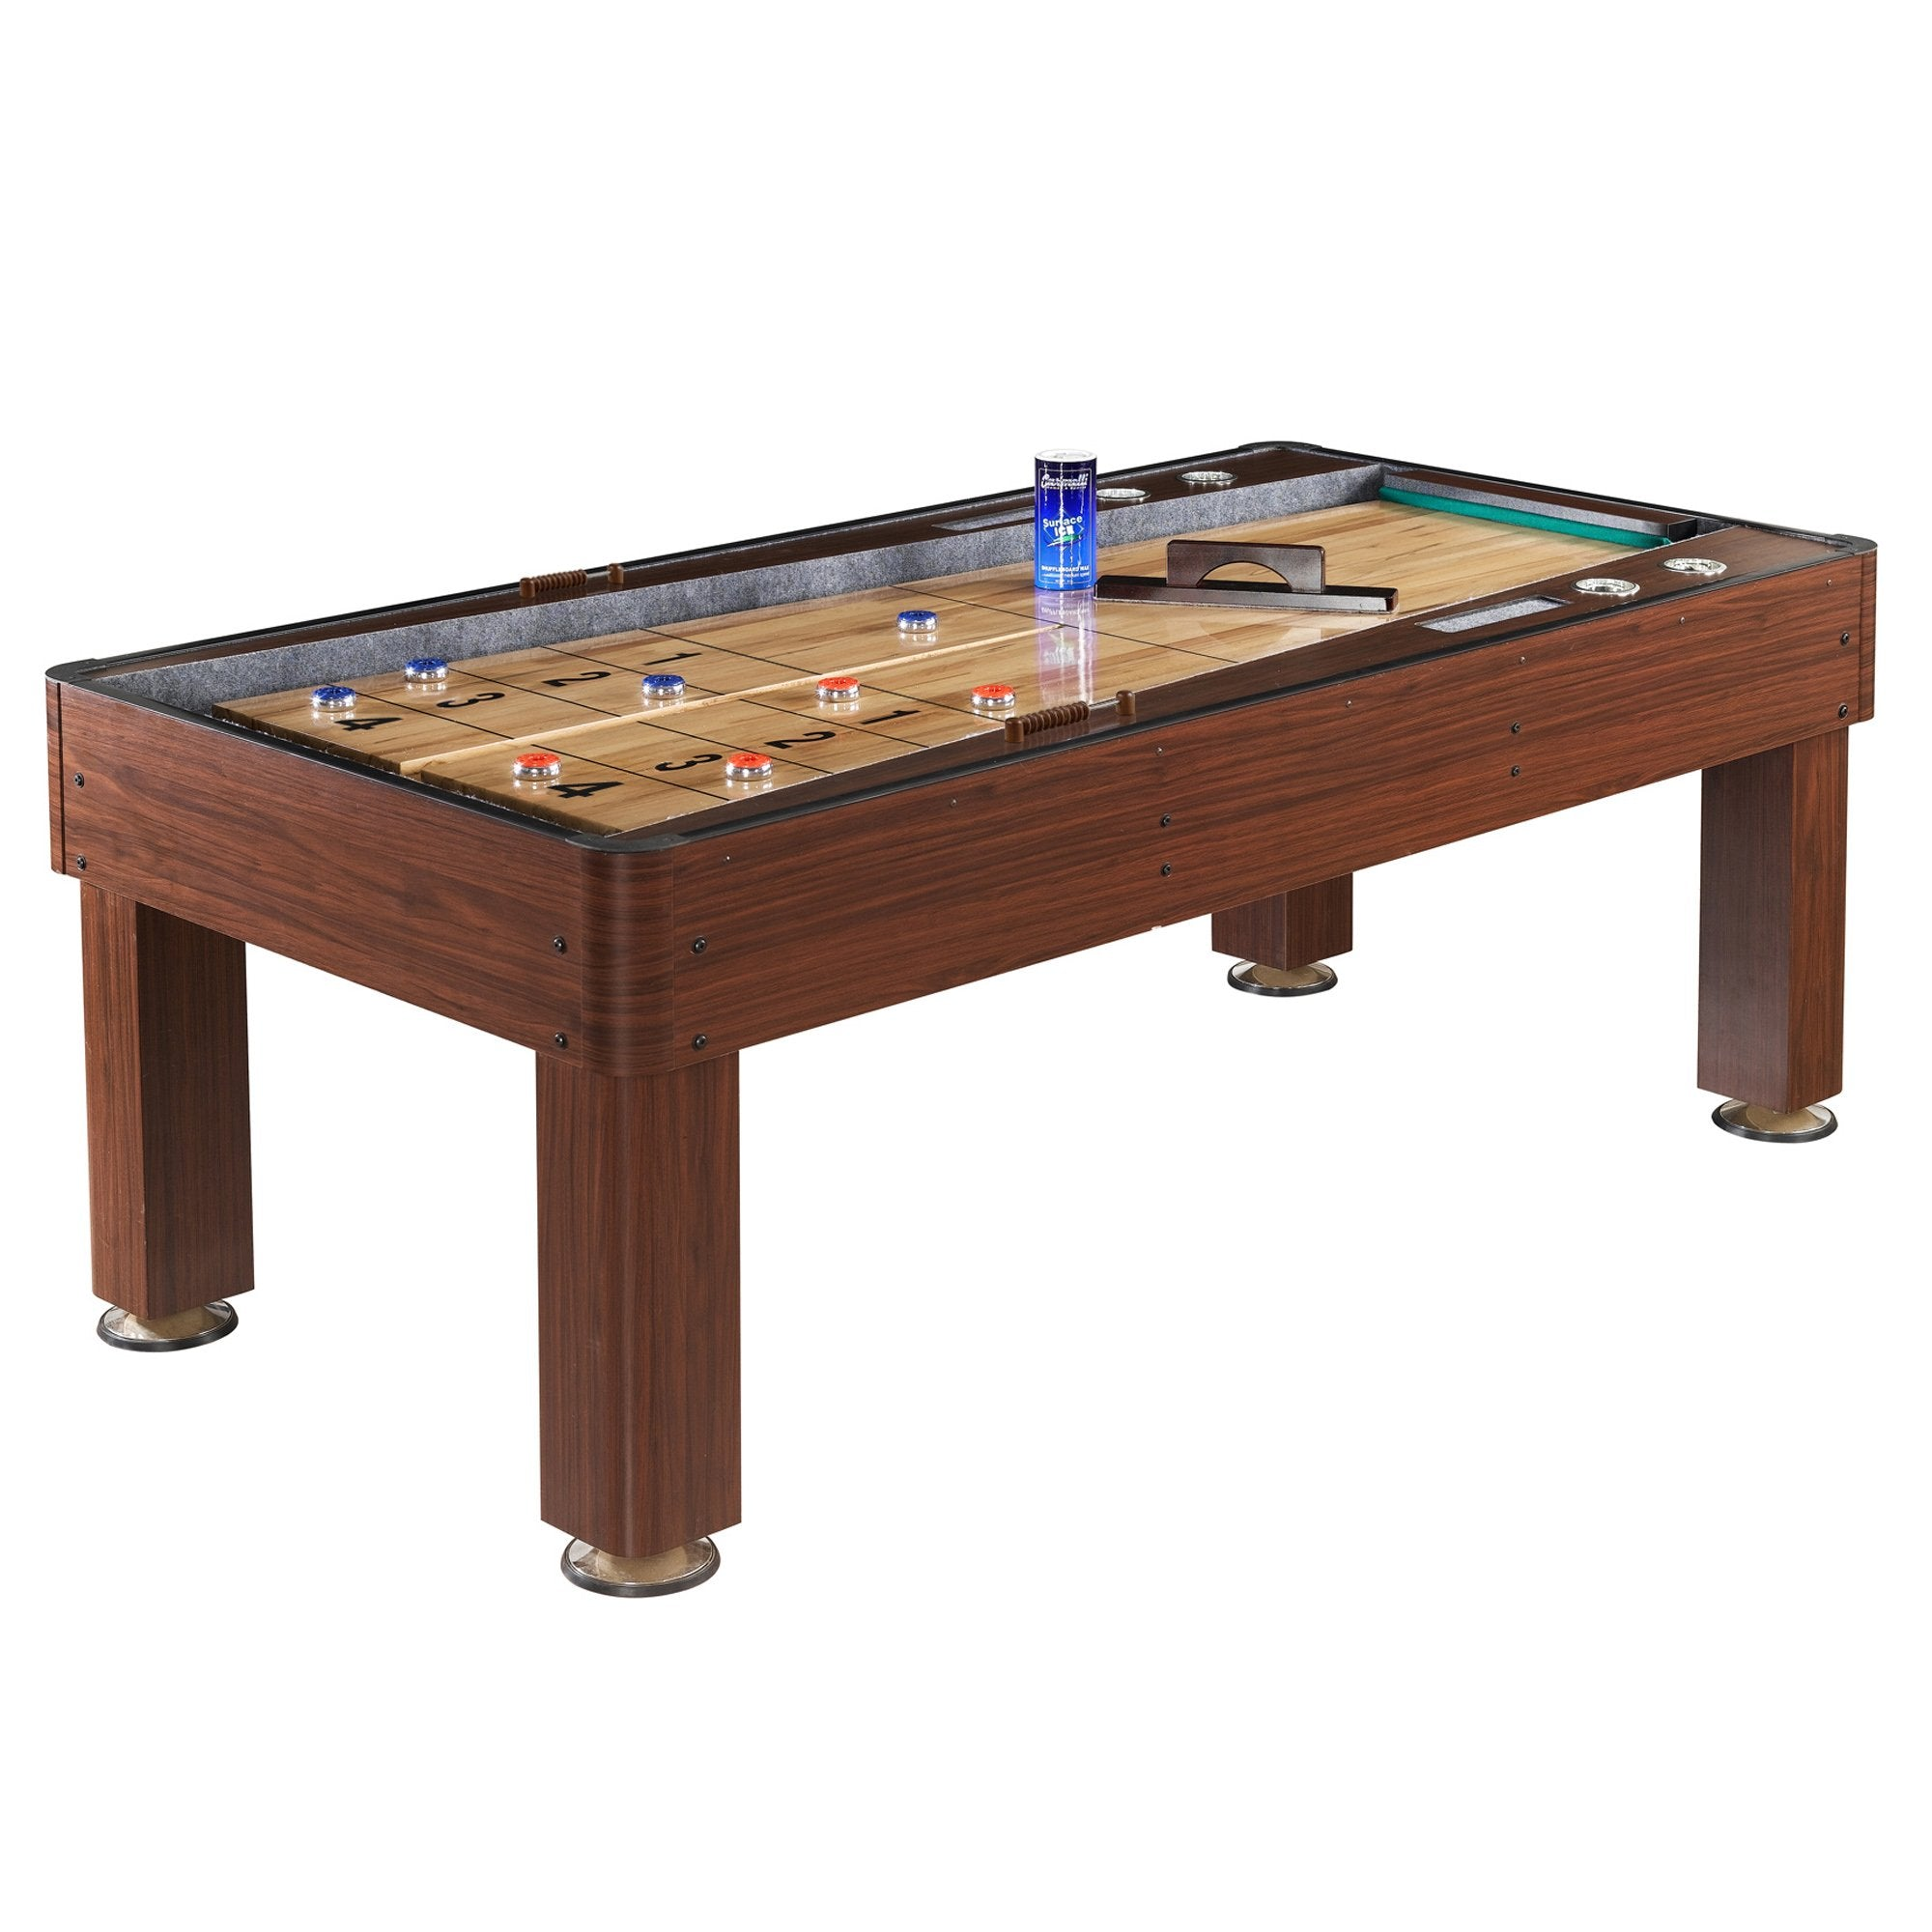 Hathaway Ricochet 7ft Shuffleboard Table - Gaming Blaze